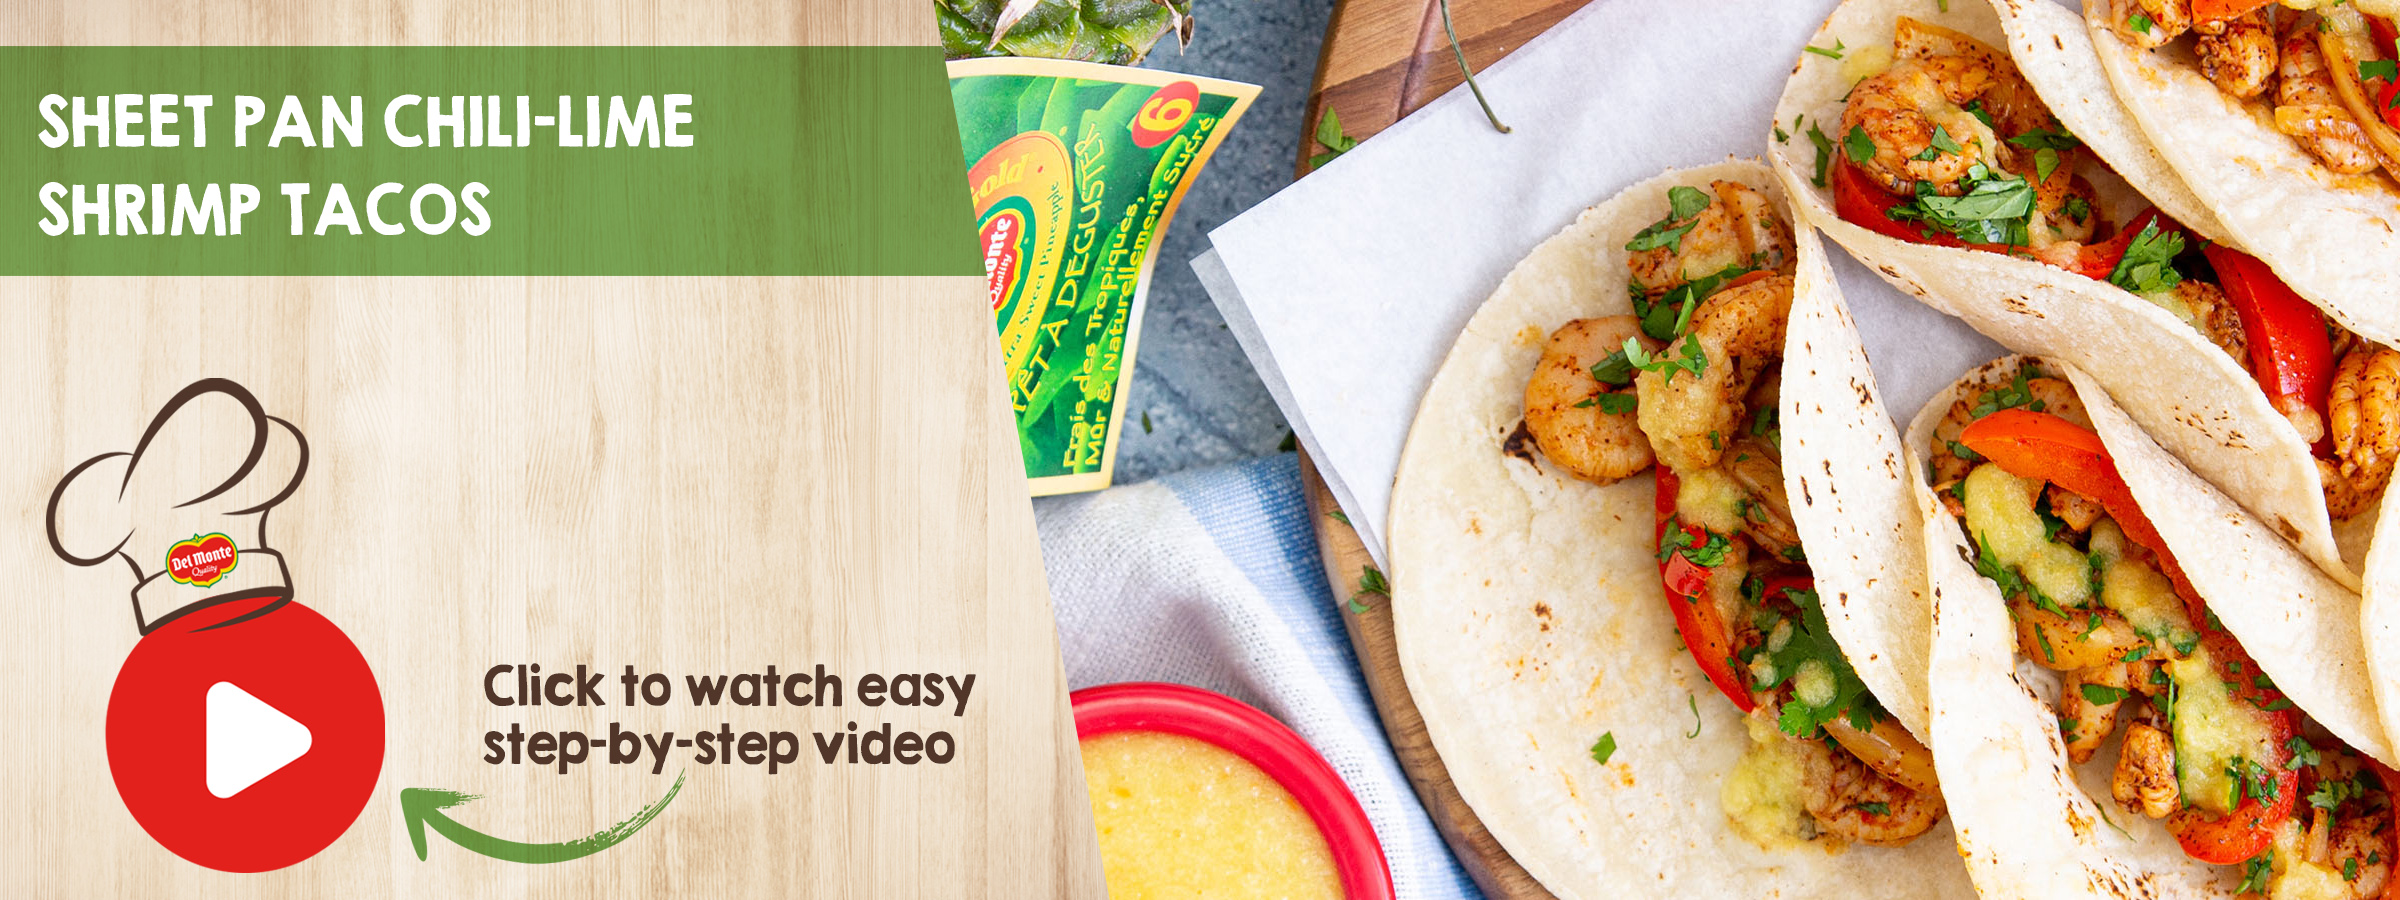 Homepage-Banner_Try-Our-Recipes_-Sheet-Pan-Chili-Lime-Shrimp-Tacos